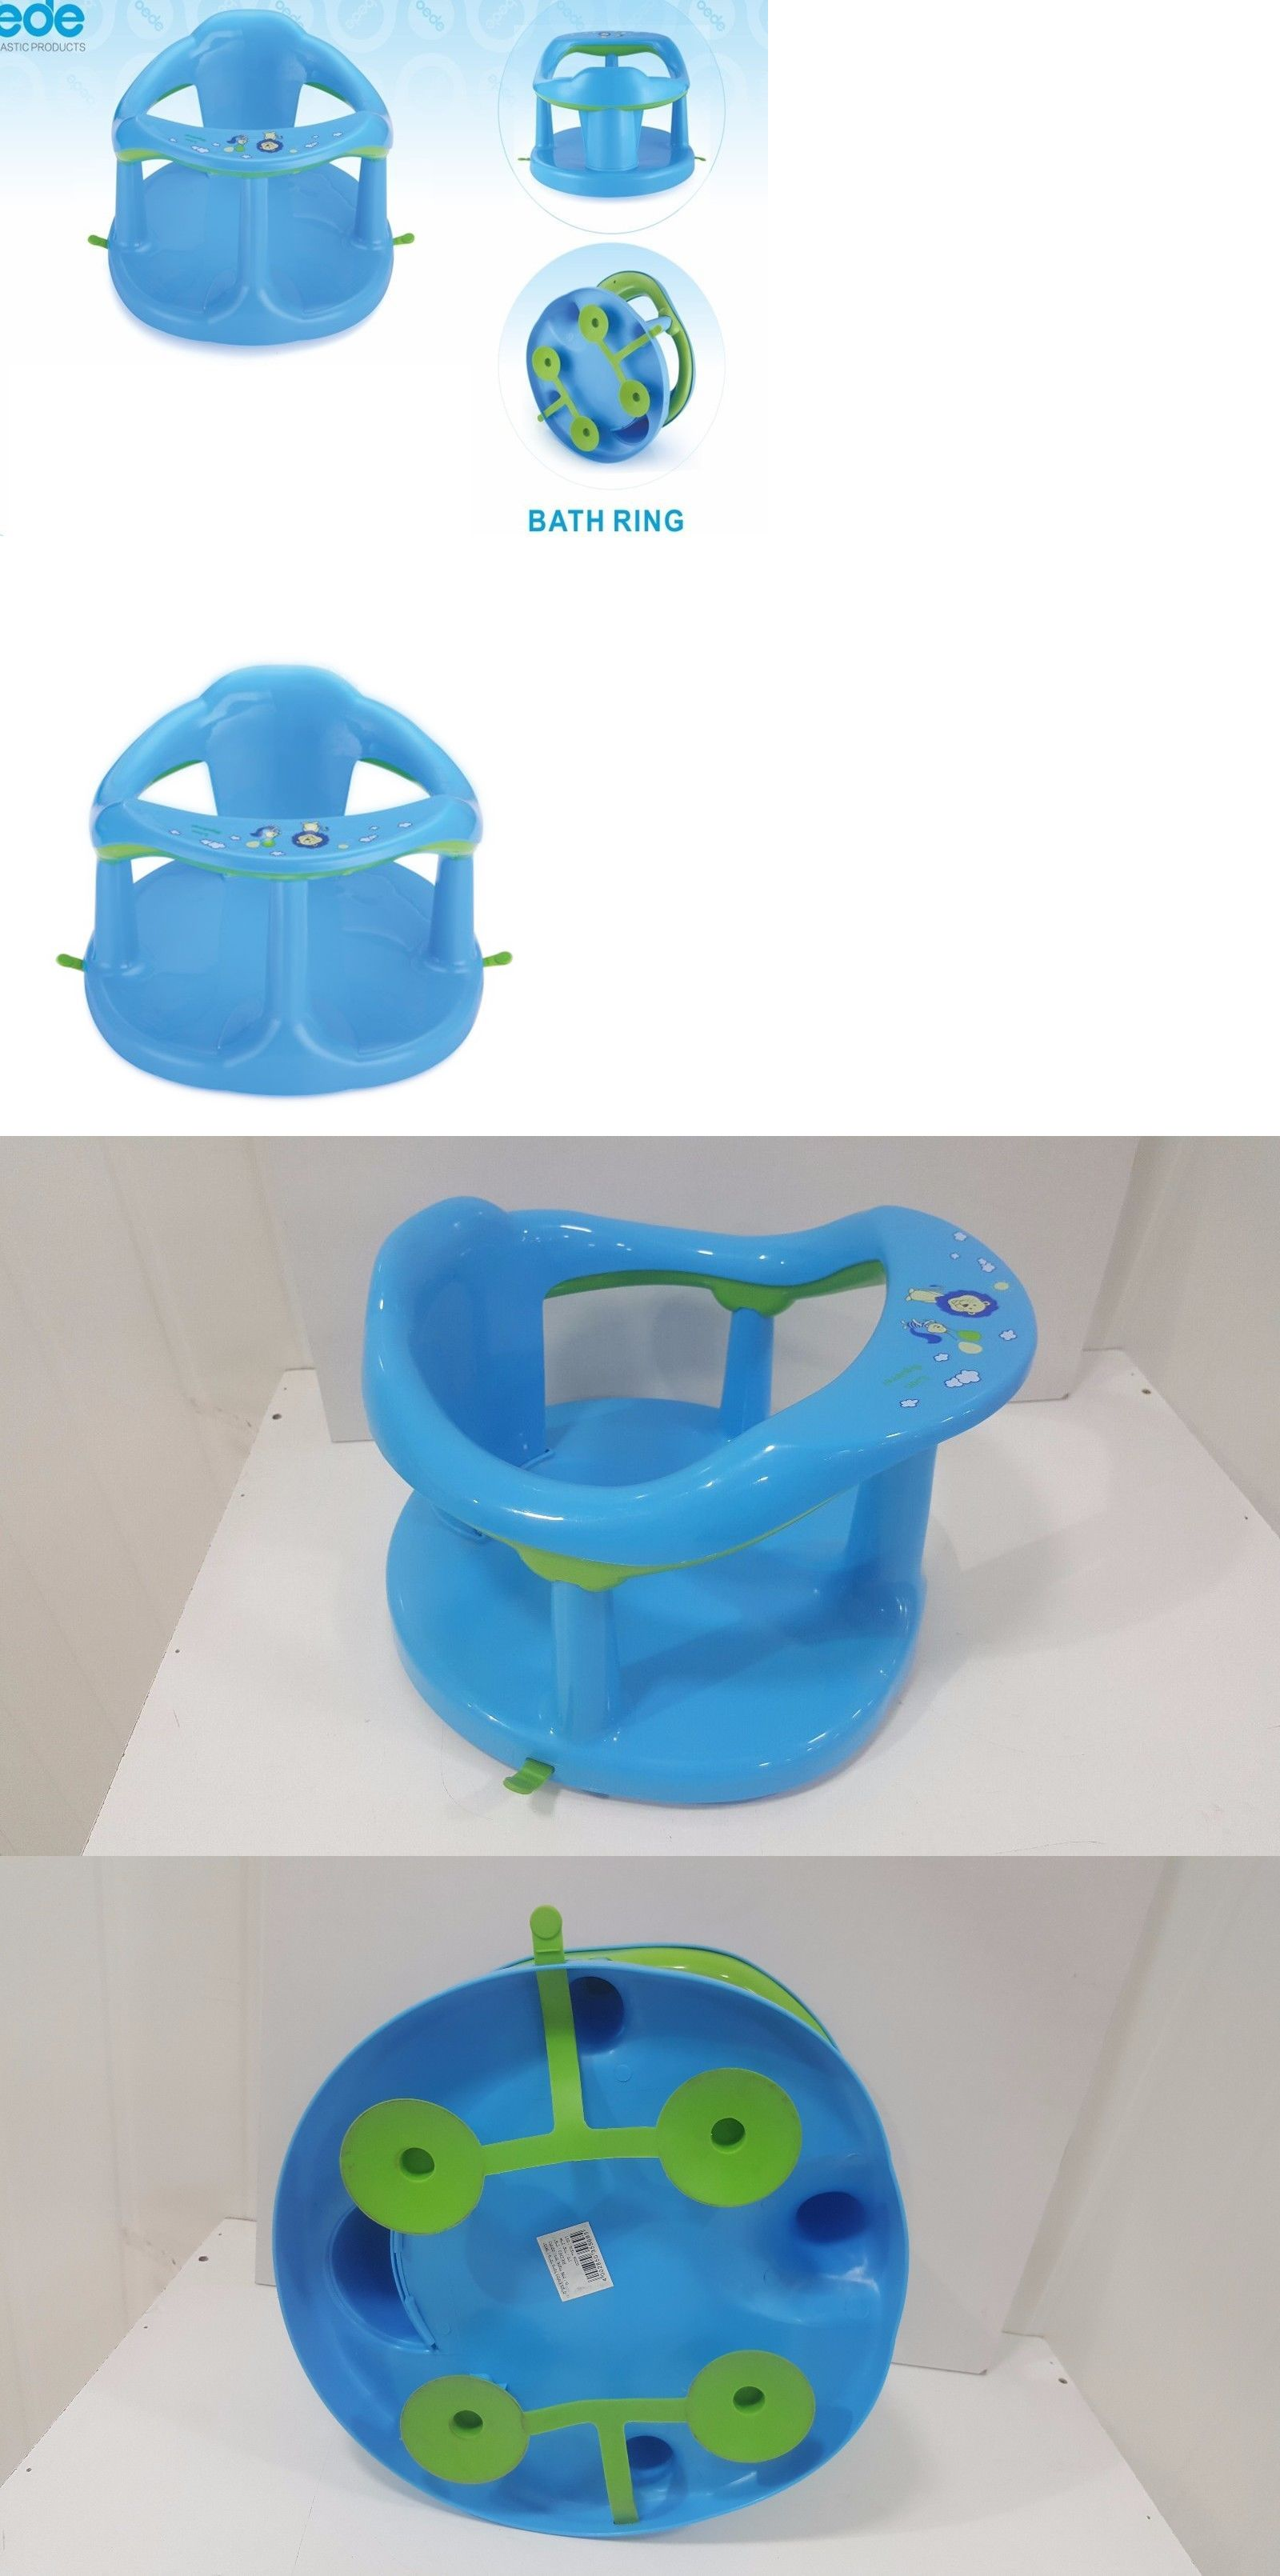 Bath Tub Seats and Rings 162024: Baby Infant Bath Tub Seat Ring ...